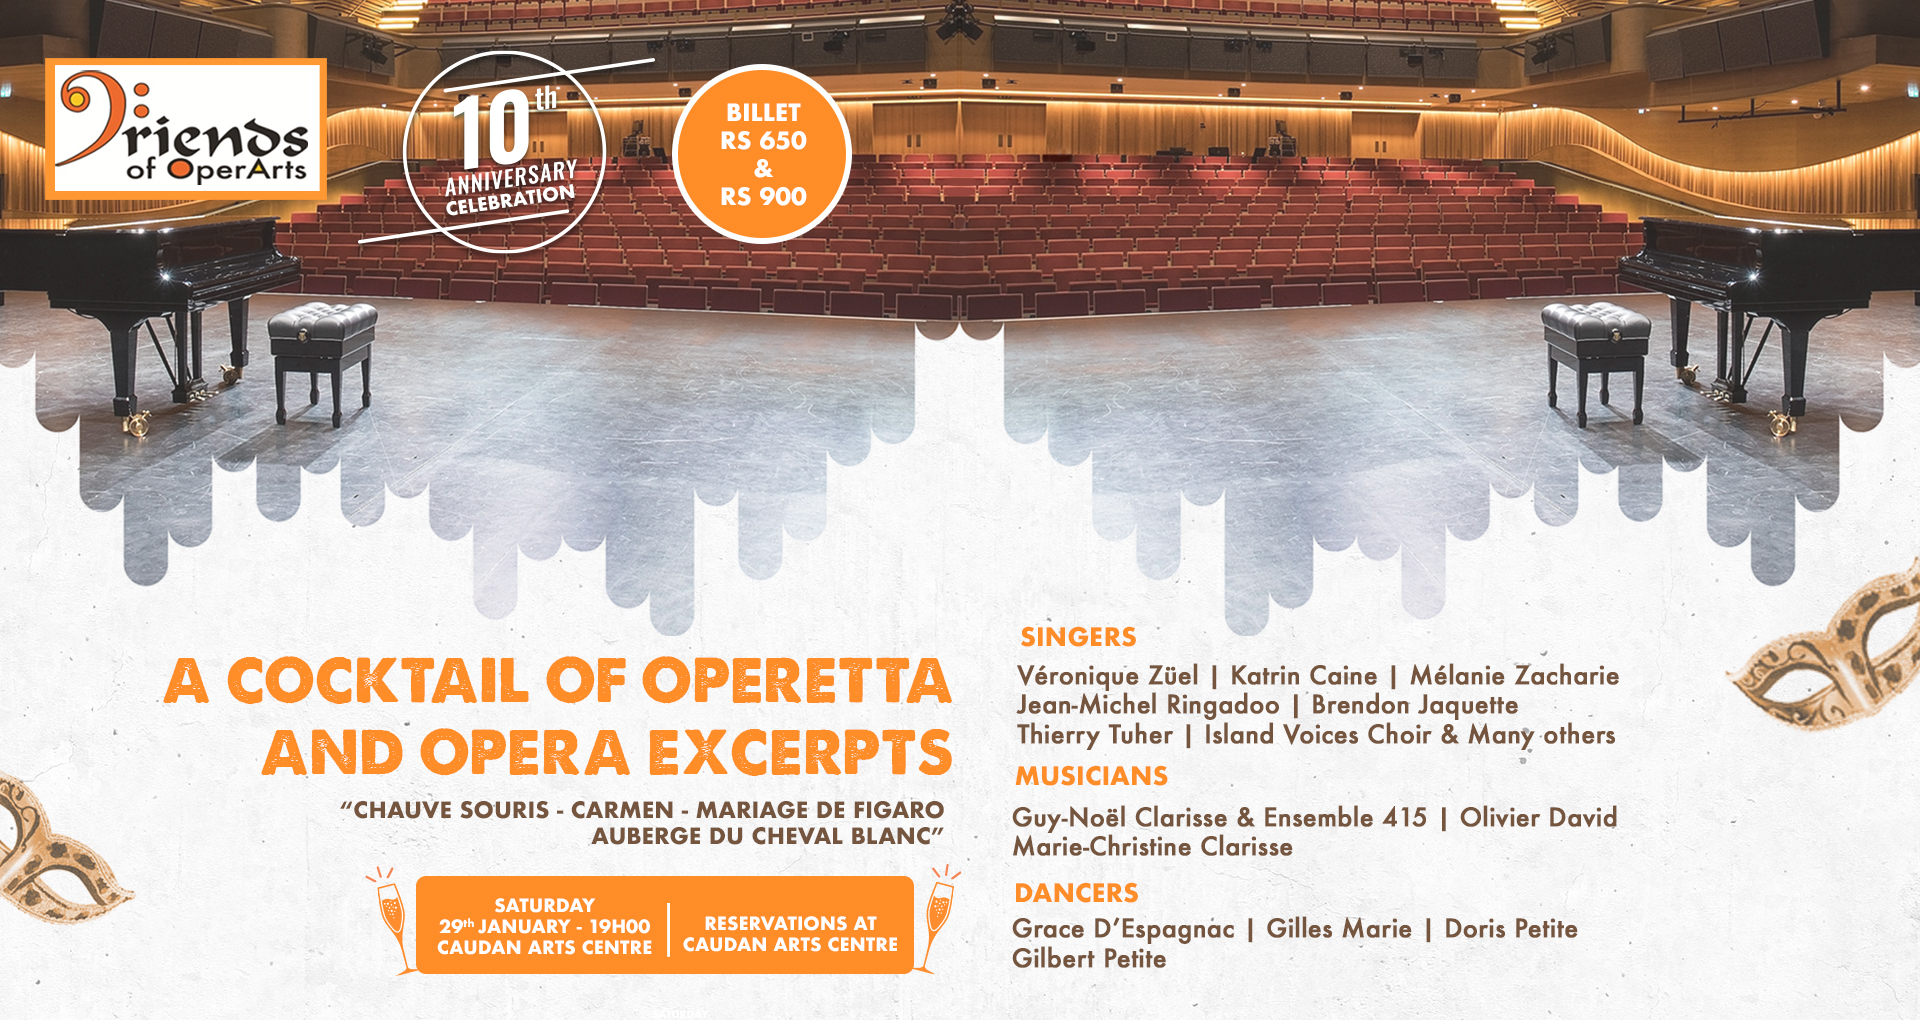 A cocktail of Opera and Operetta excerpts